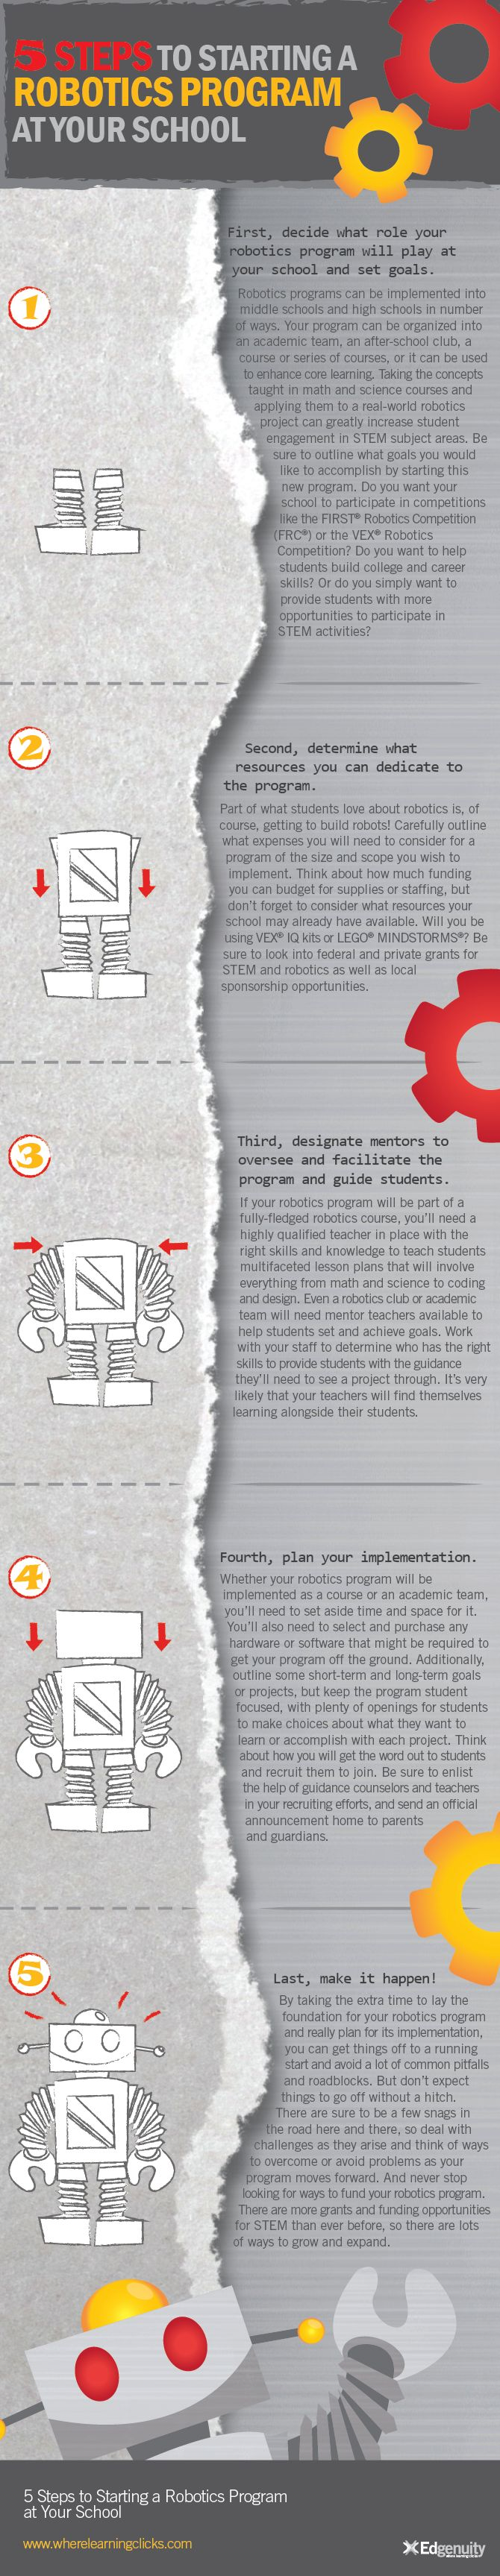 How to Start a Robotics Program at Your School Infographic - http://elearninginfographics.com/start-robotics-program-school-infographic/